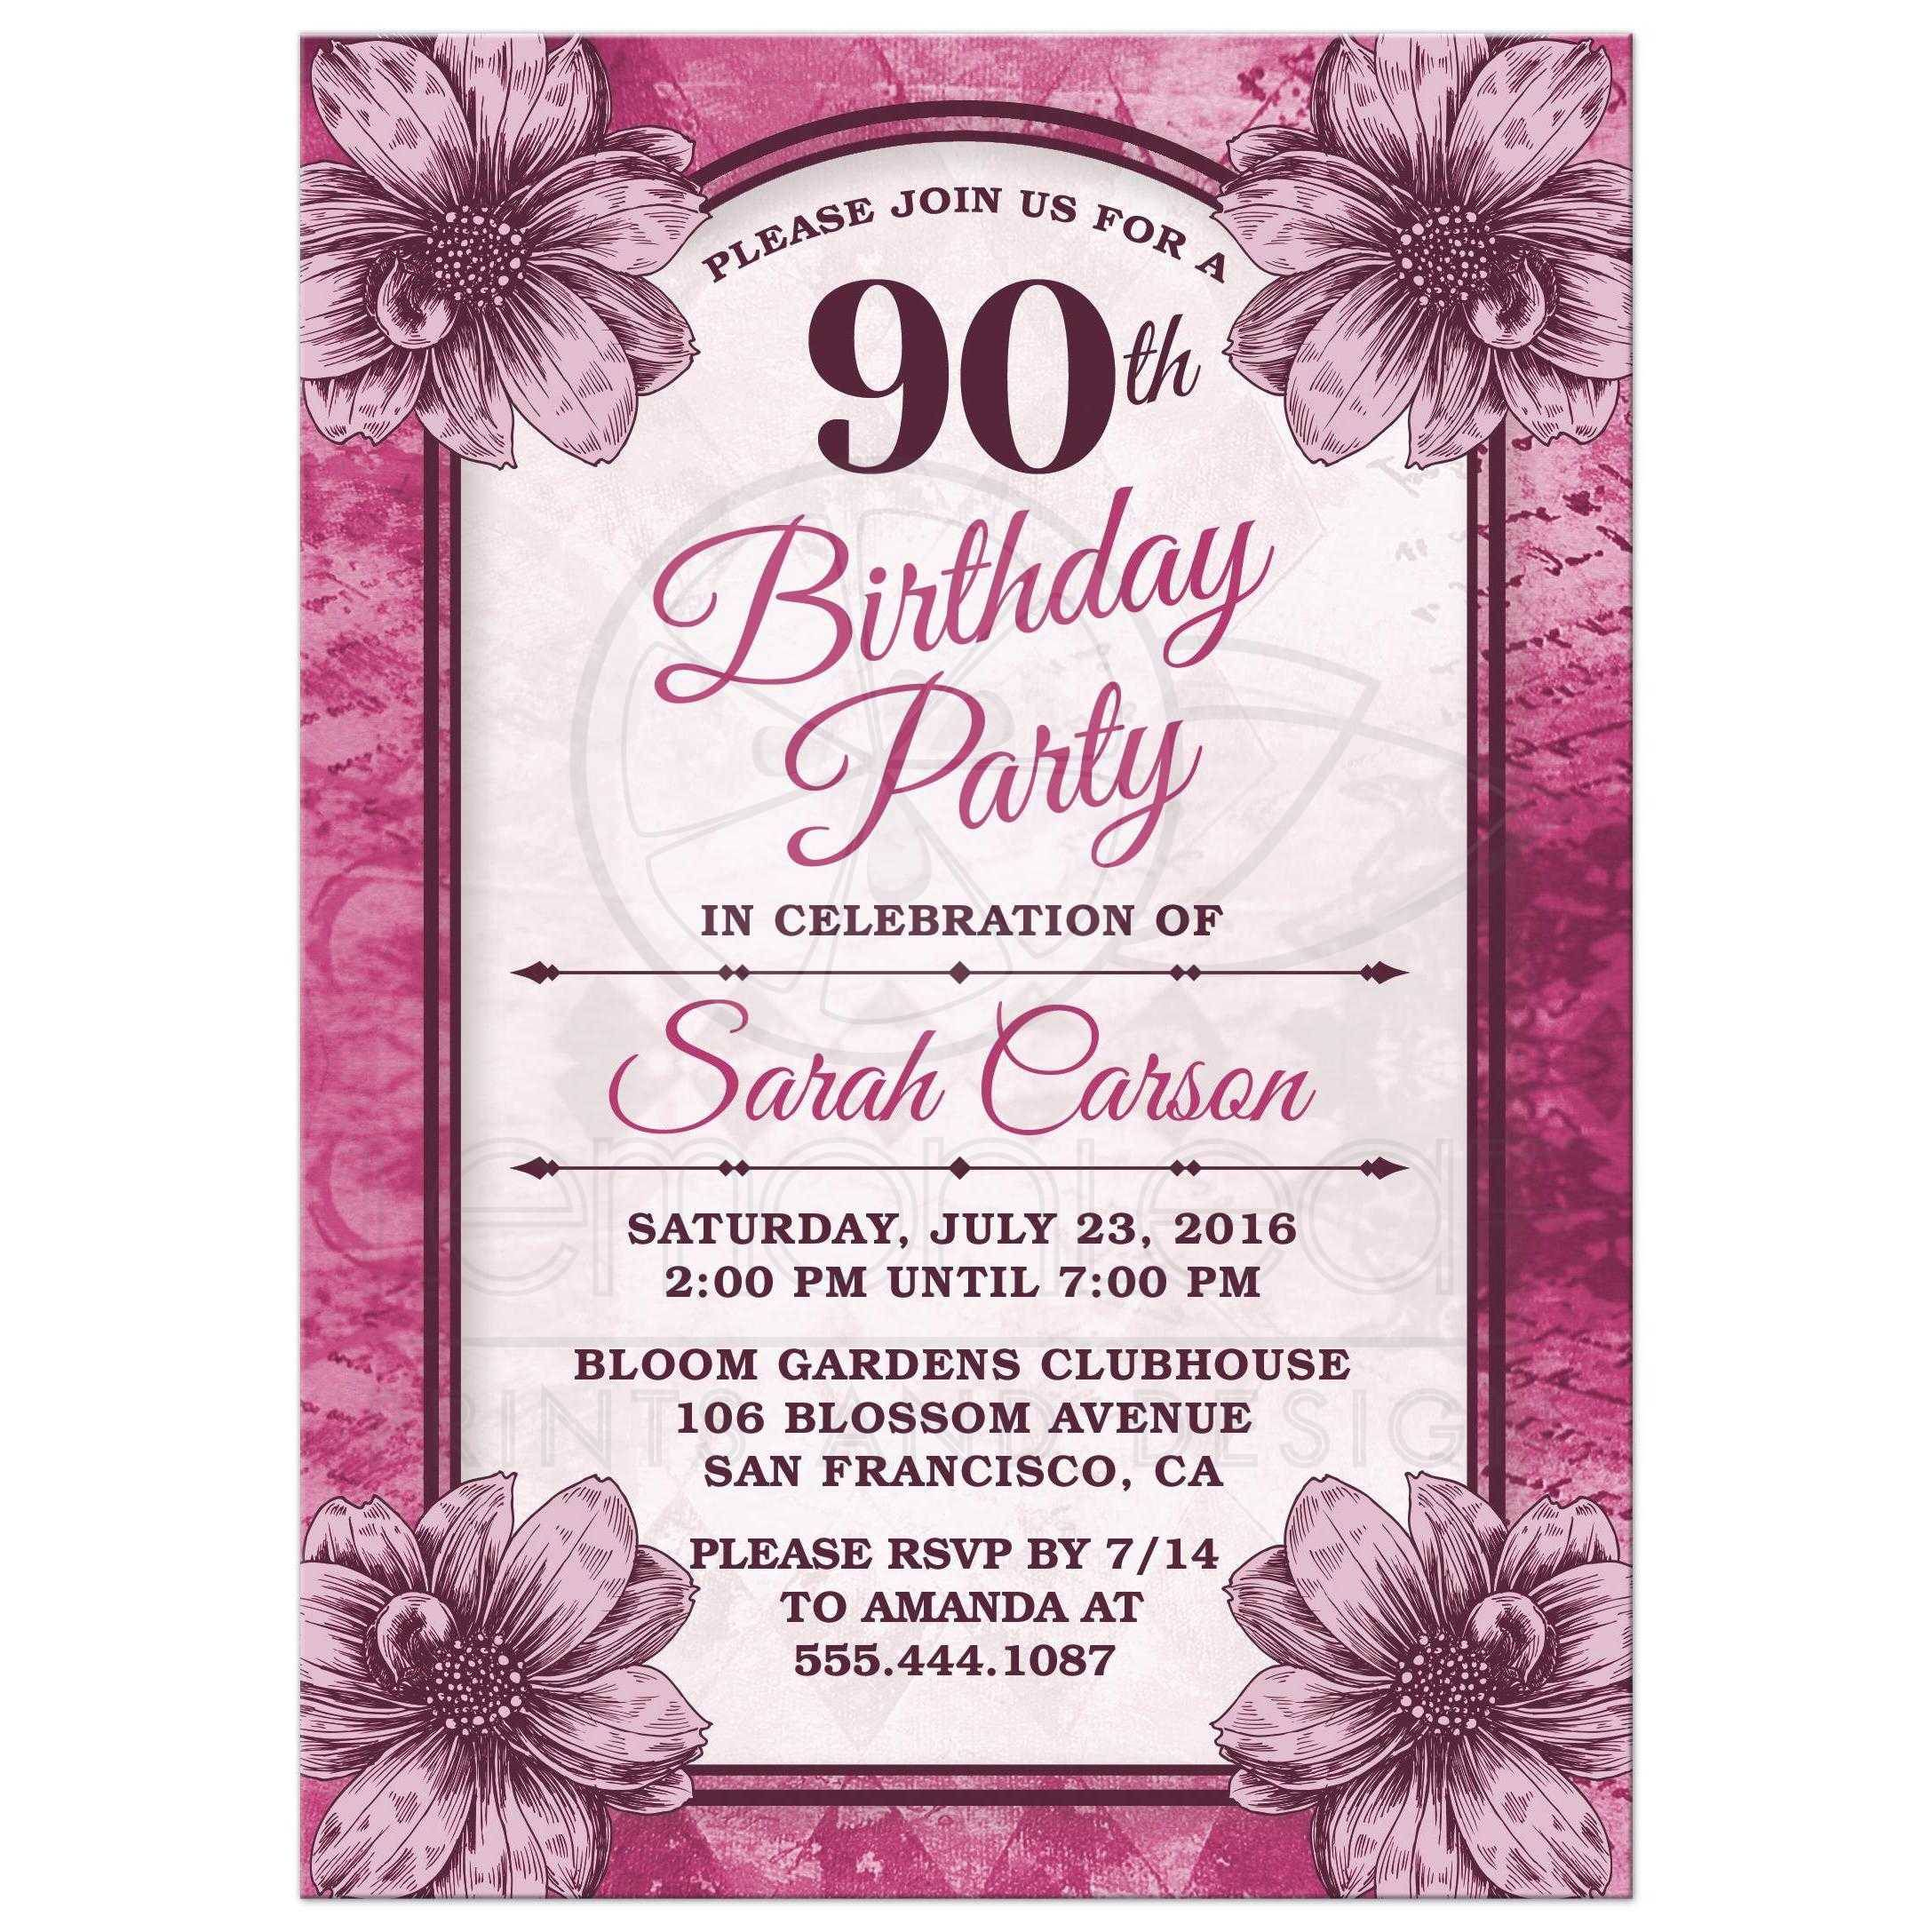 90th birthday party invitations templates free party ideas 90th birthday party invitations templates free filmwisefo Images